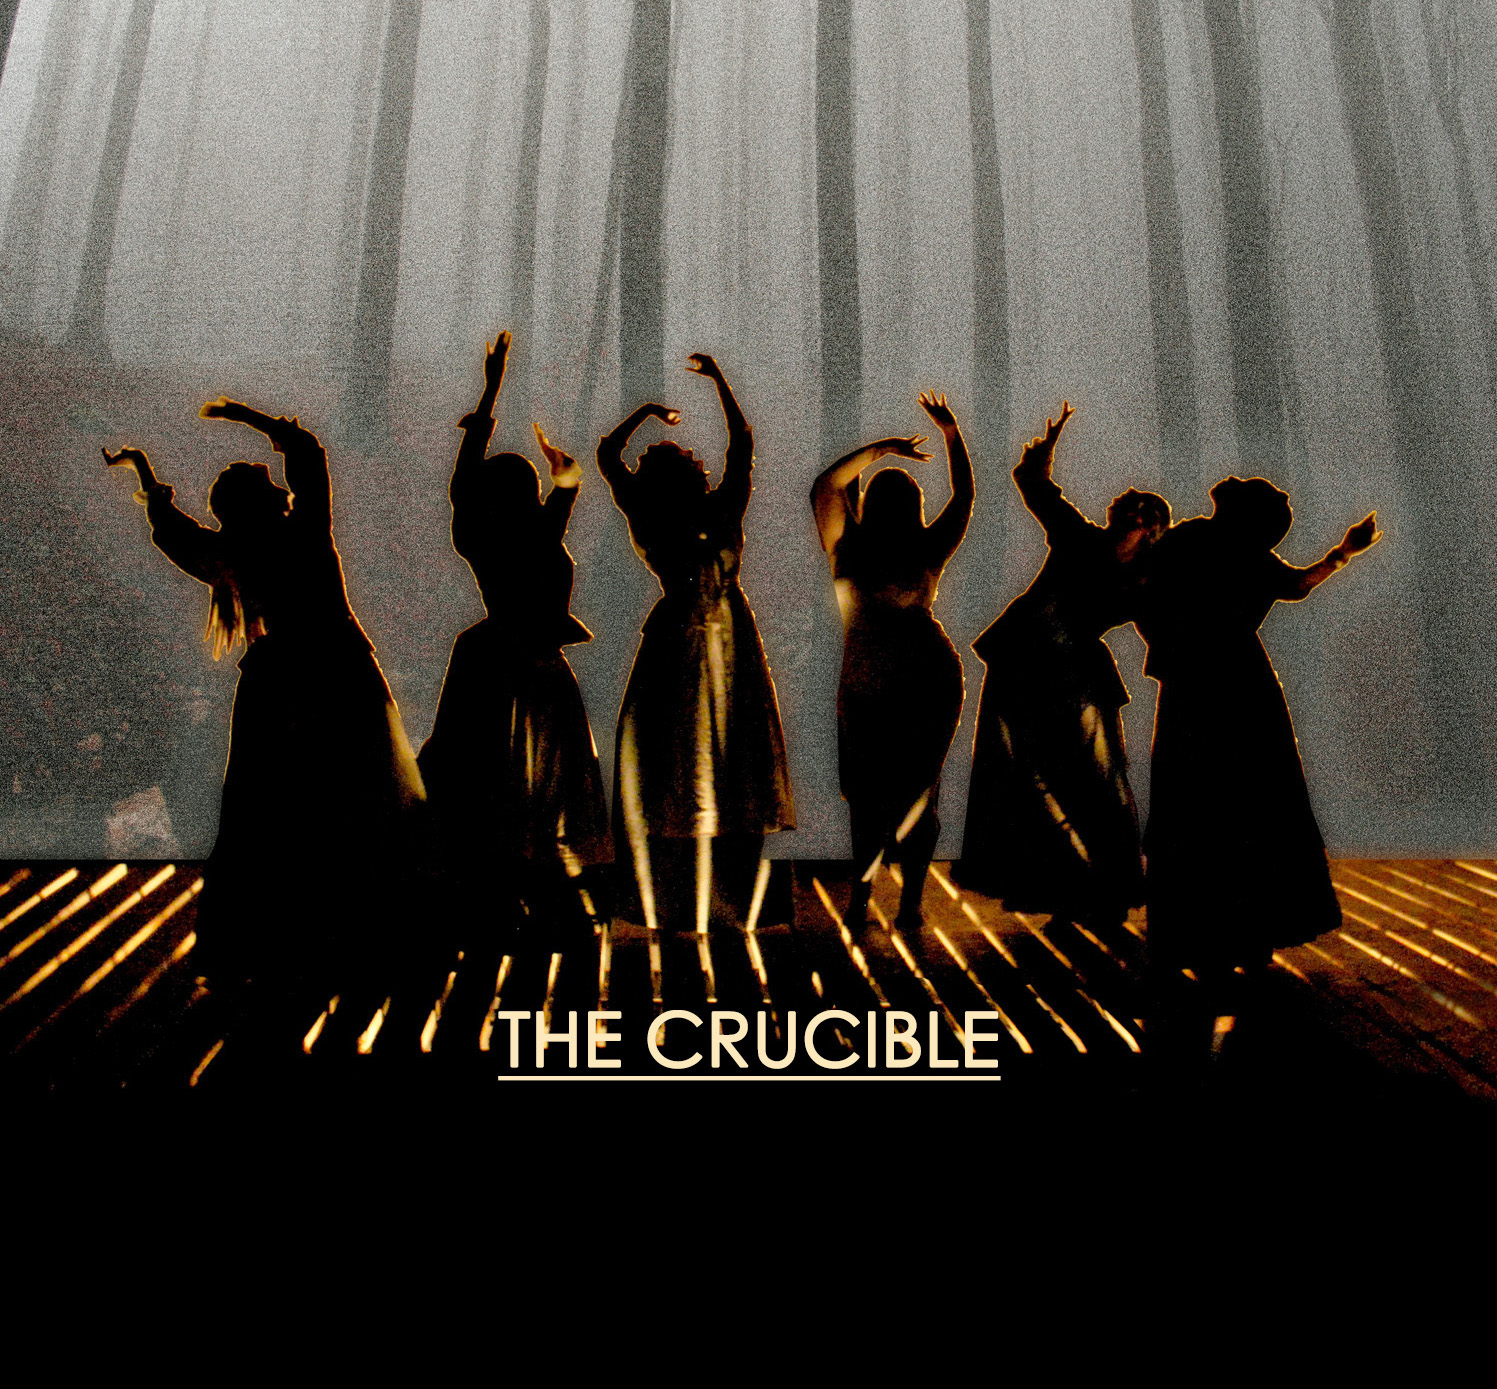 a summary of the crucible by arthur miller Watch video the crucible  pg-13  arthur miller wrote the events and the subsequent trials where those who demanded their innocence were  plot summary .